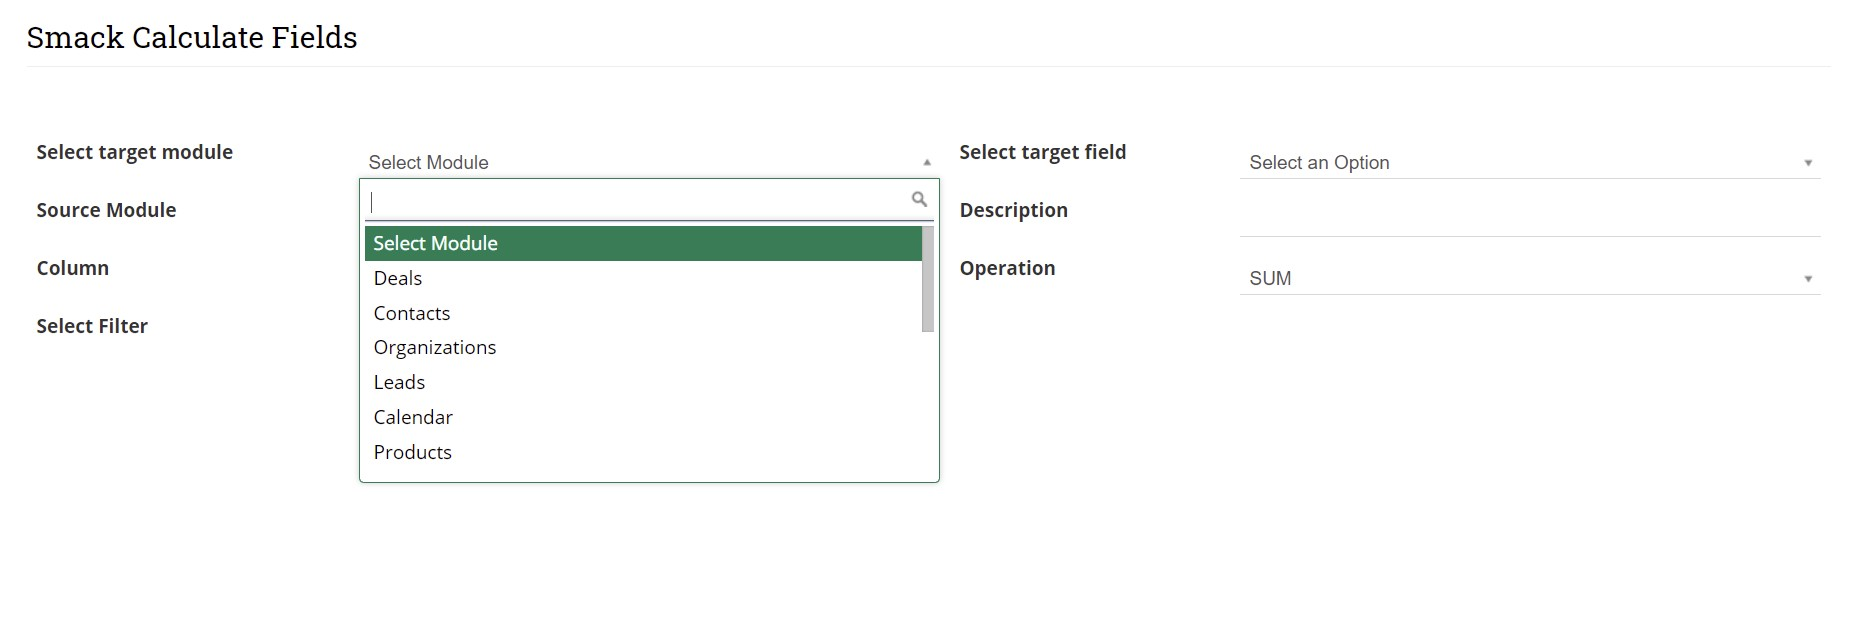 Select target module to configure with Calculate Fields